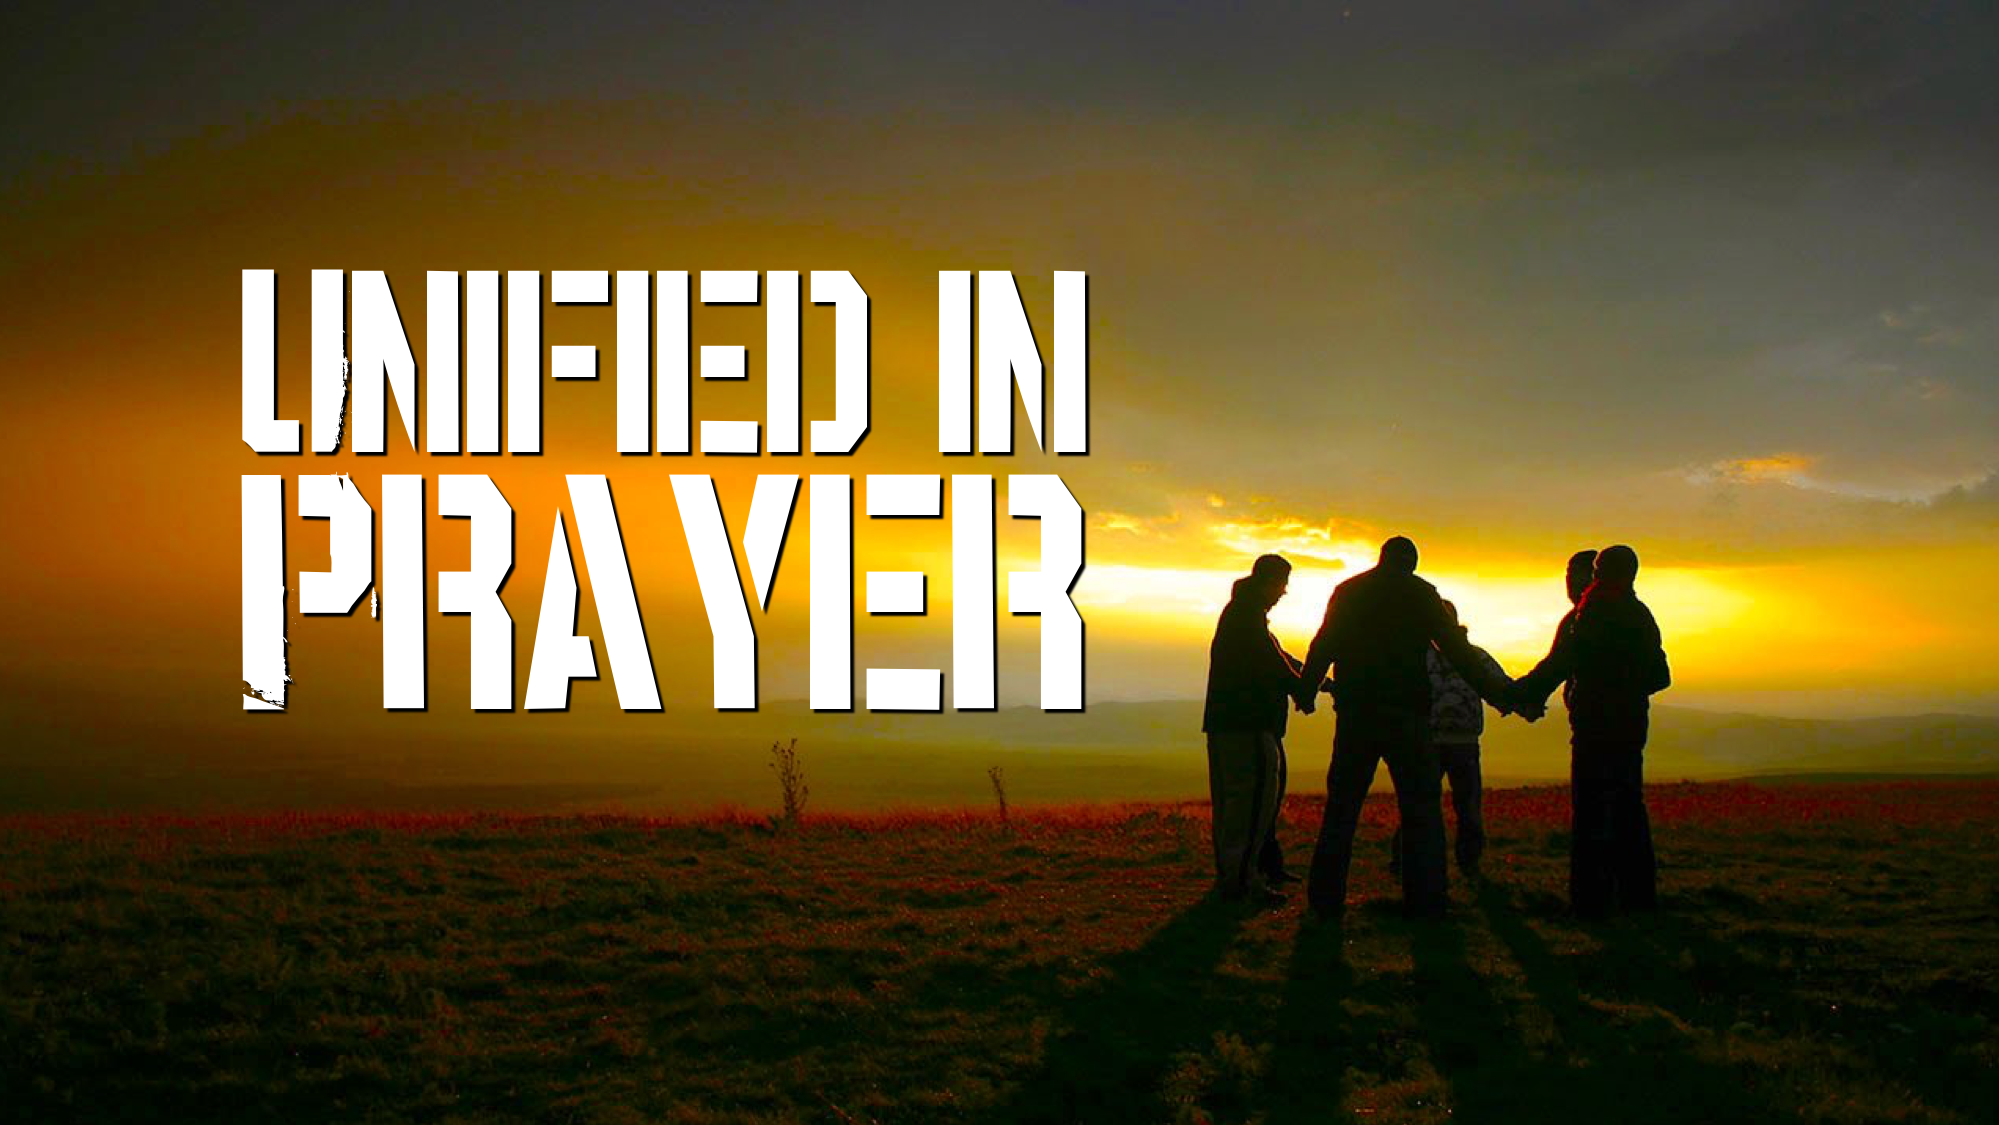 Unified in Prayer